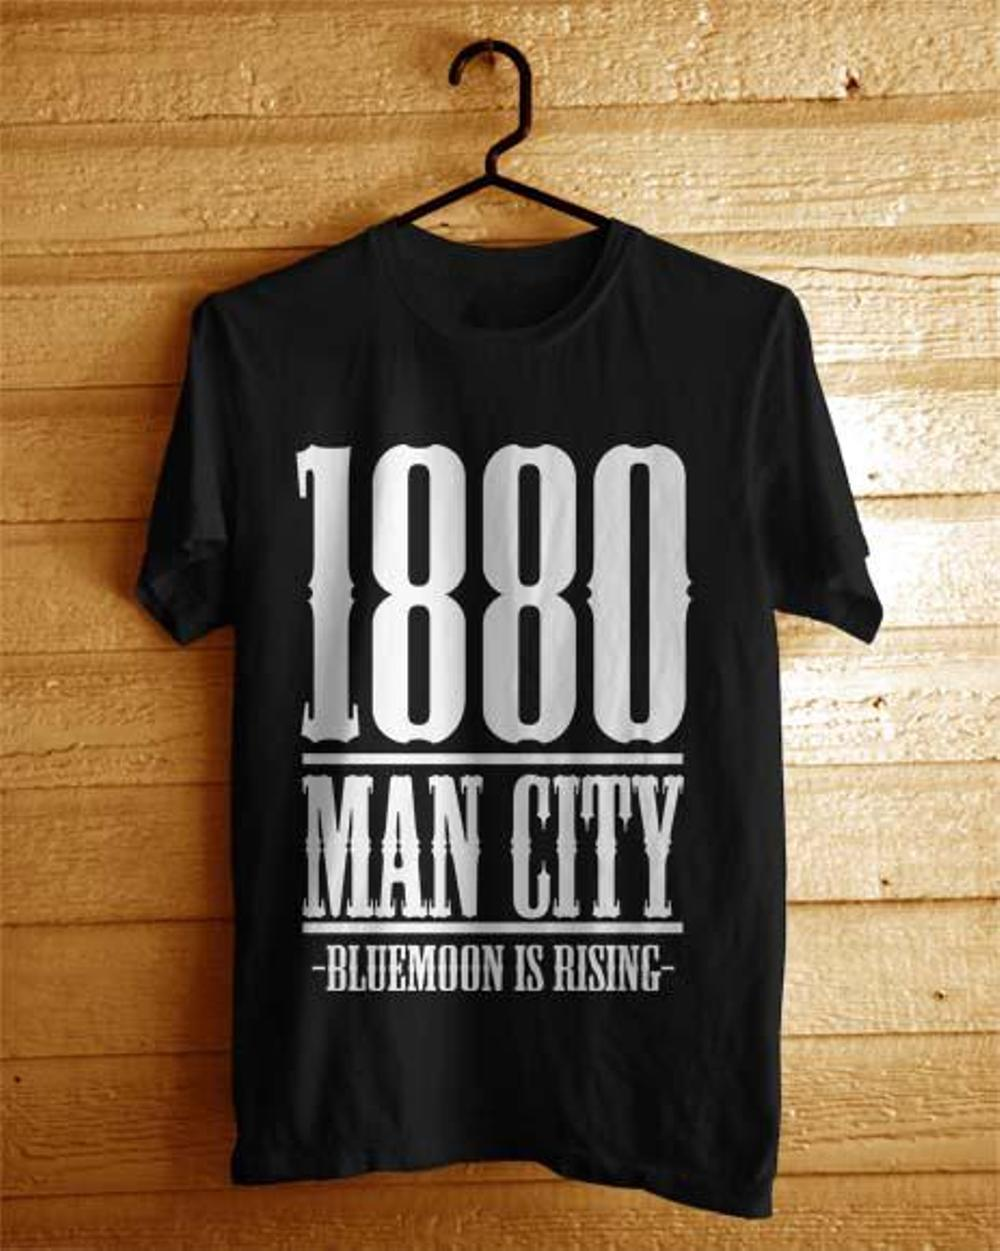 Referensi Harga Jaket Distro Online November 2018 Murah 02  Kaos Man City Years Est Big Hitam Baju Bola The Citizens